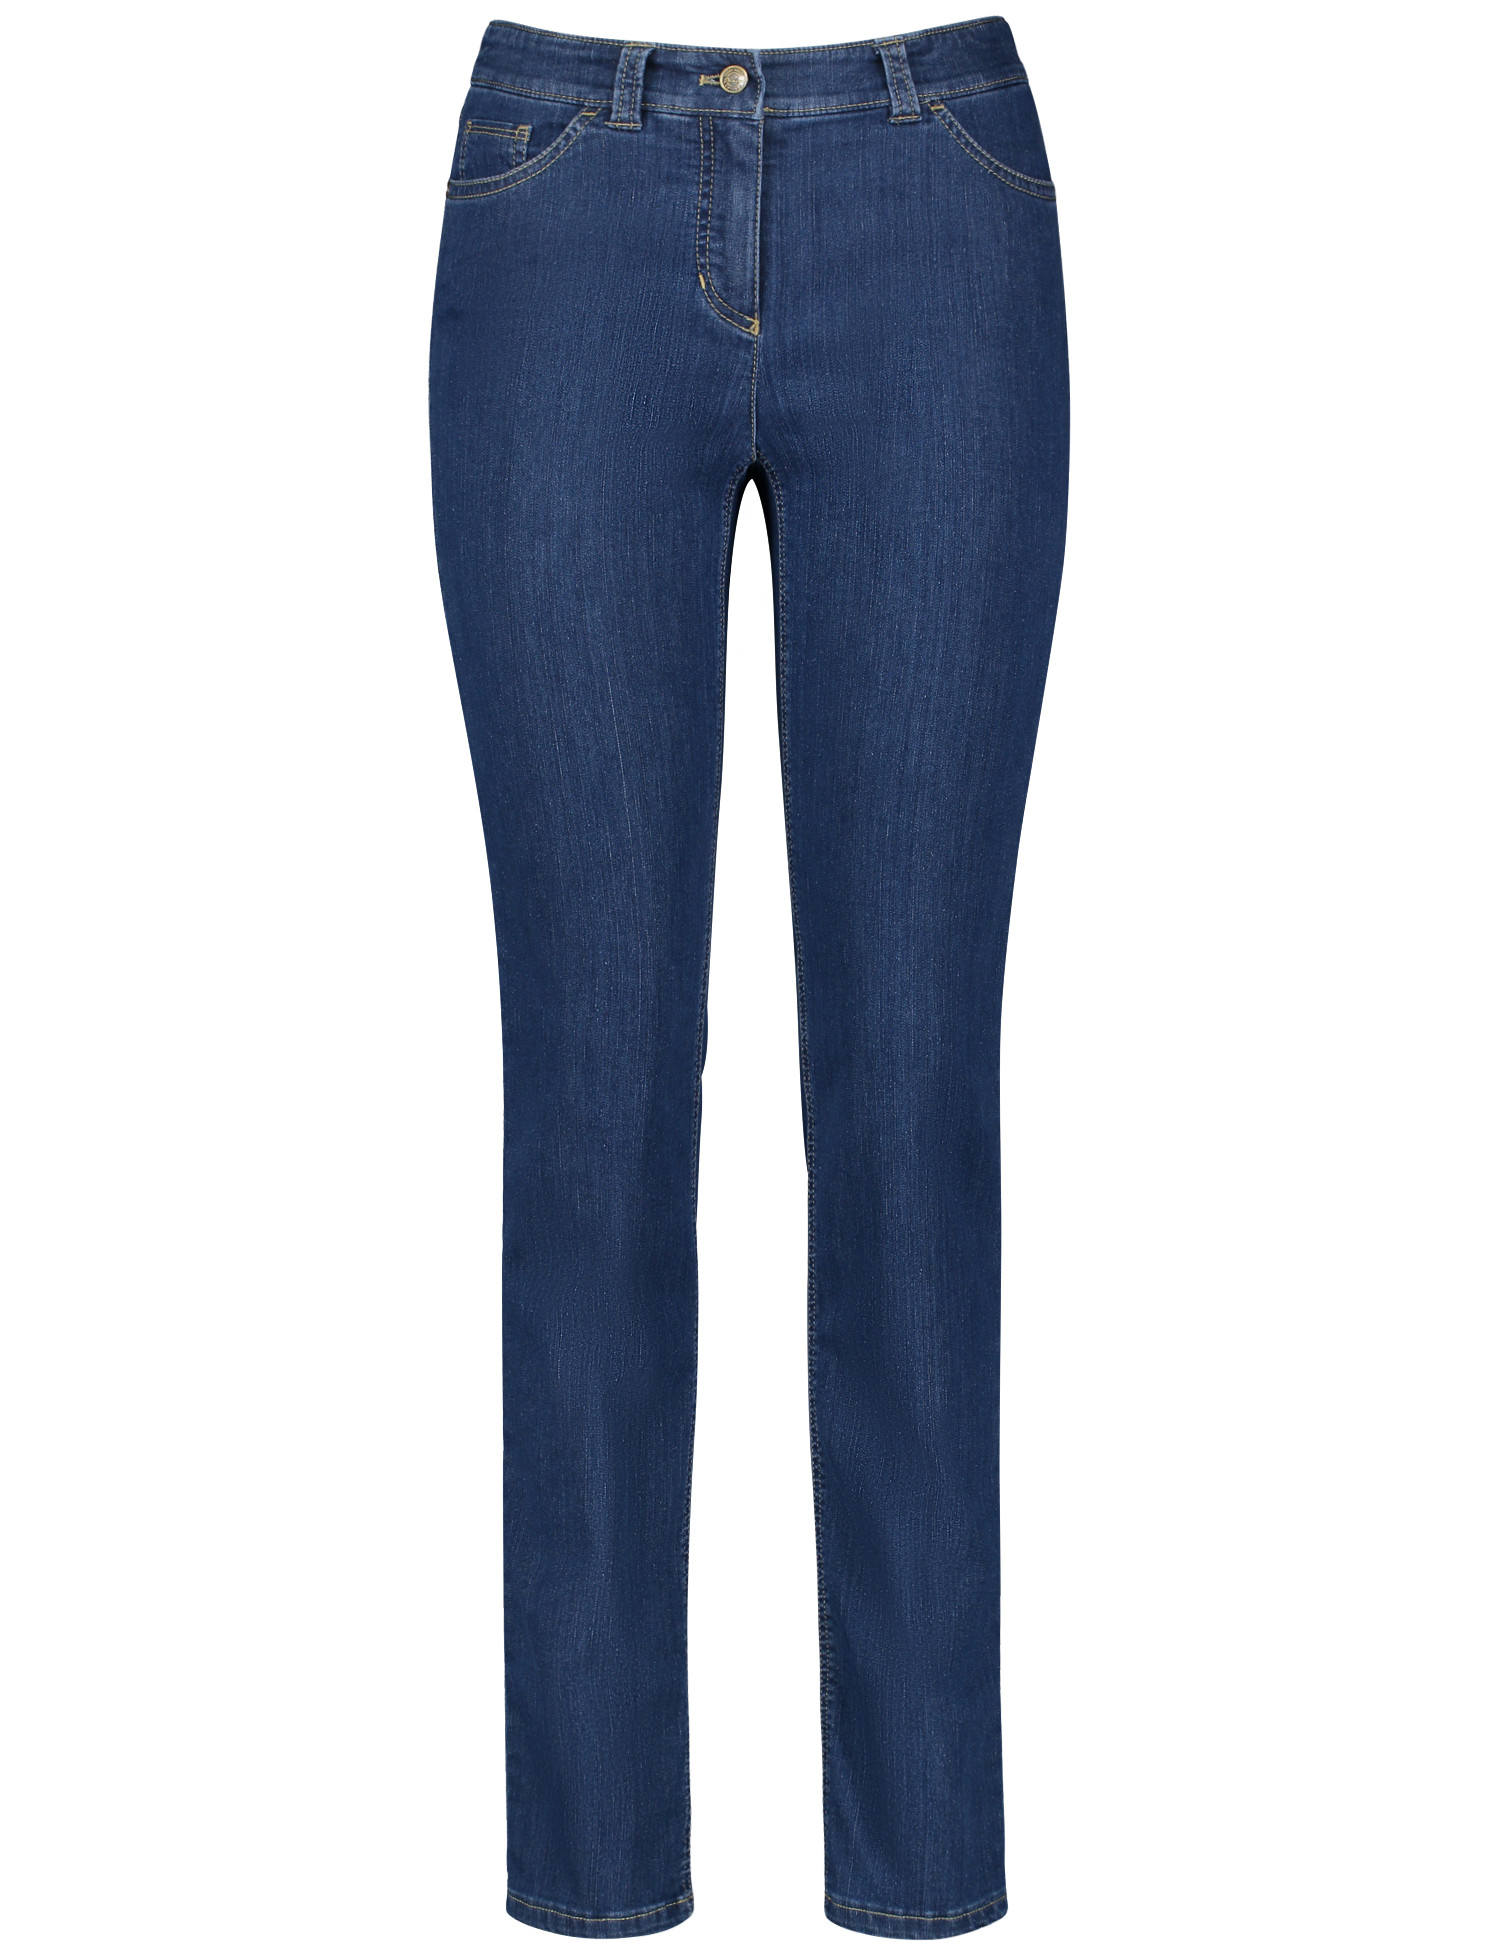 Jeans GERRY WEBER | Jeans | 92151-6785087300